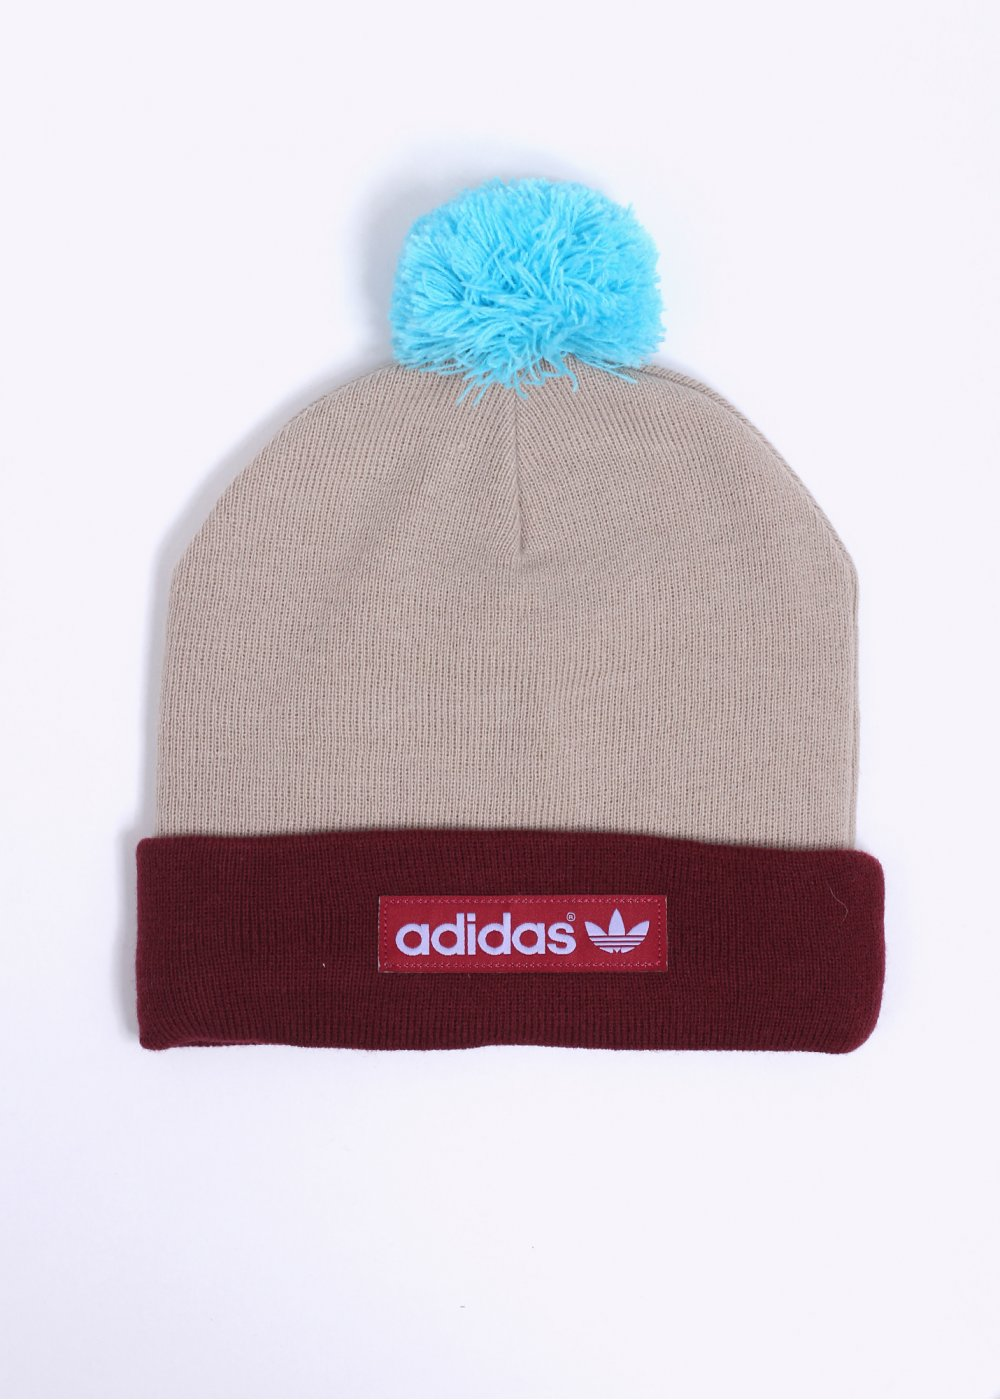 9a39cac0 adidas Originals Logo Bobble Hat - Burgundy / Brown